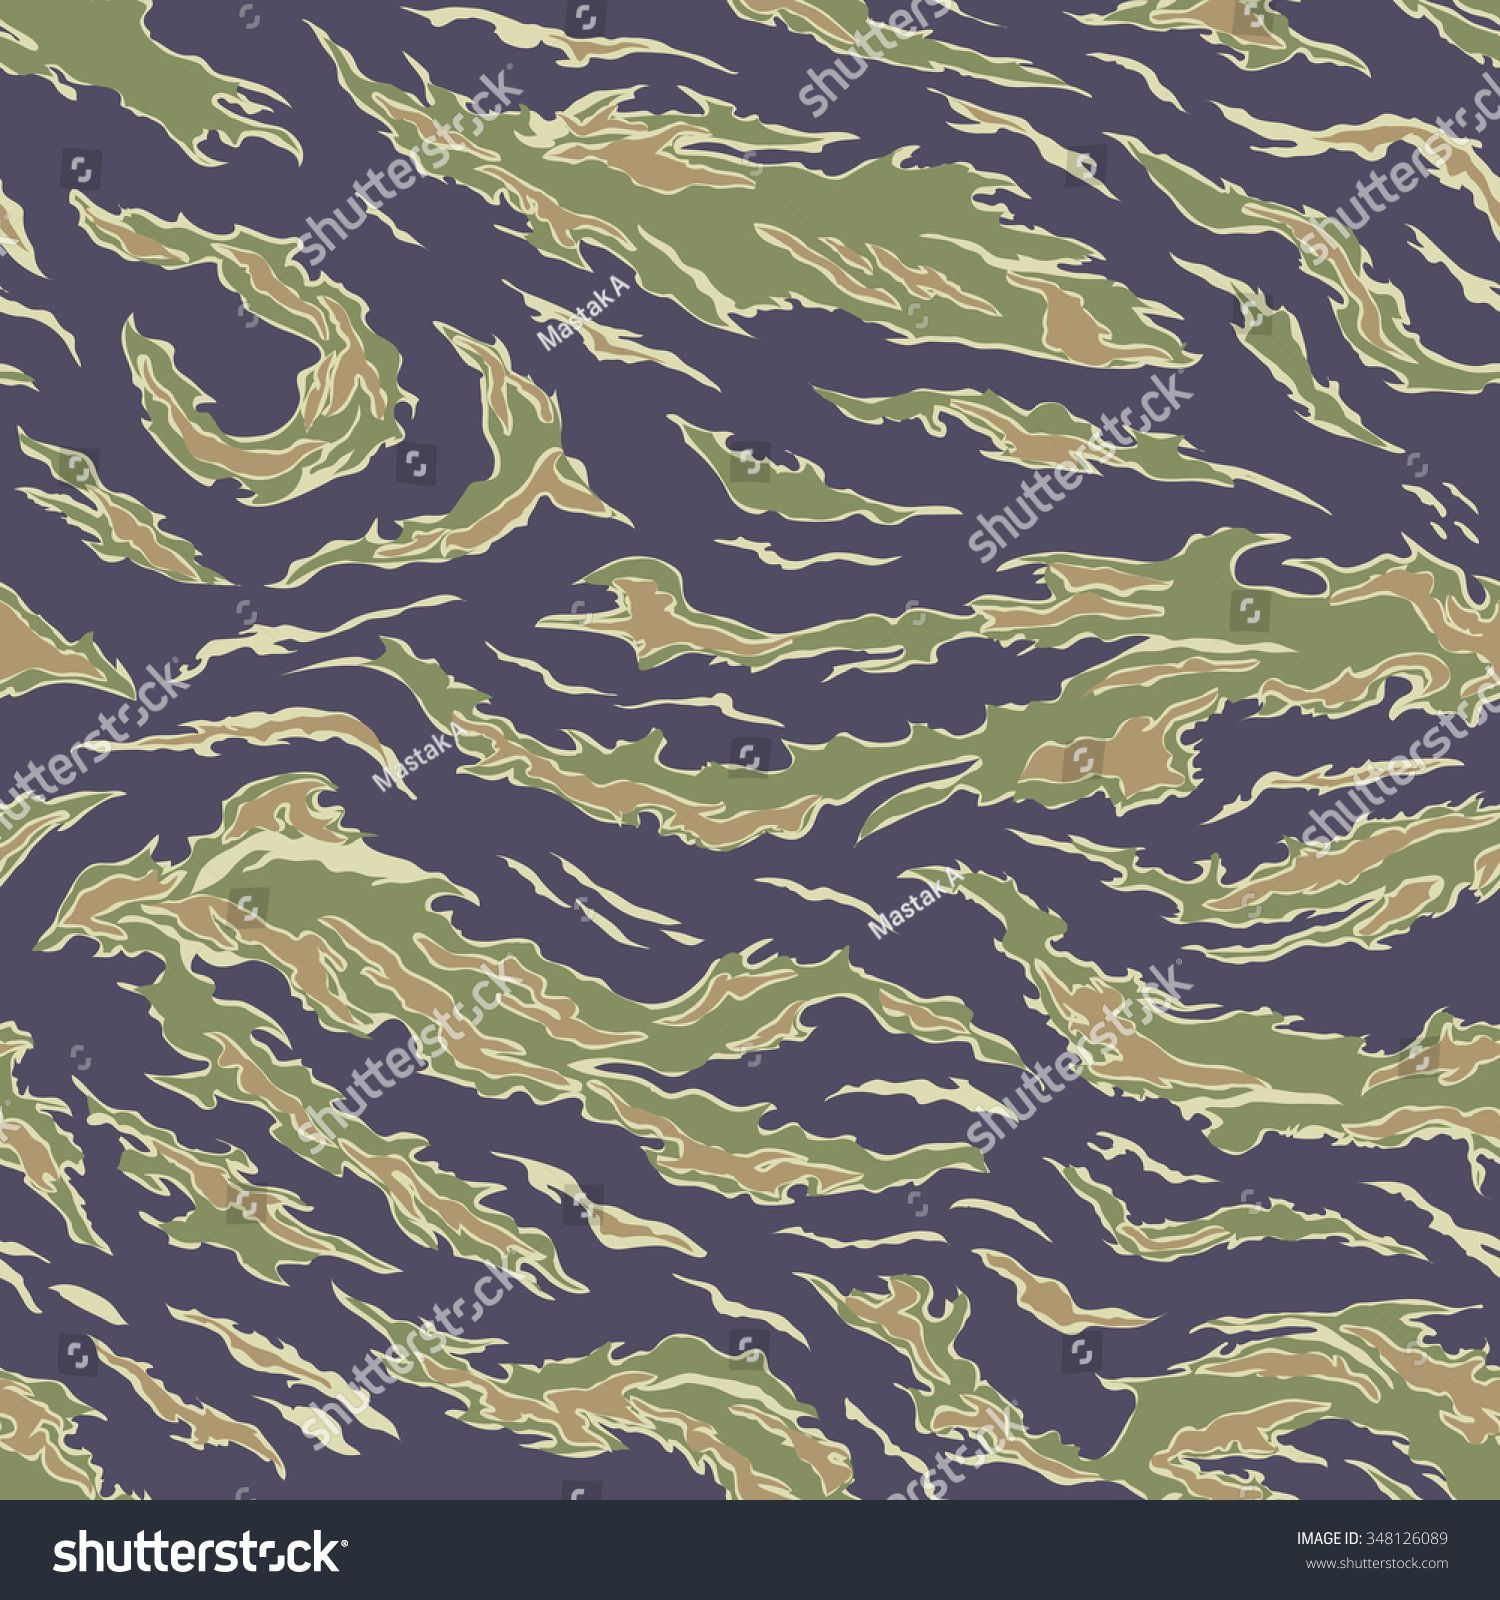 Military Camouflage Textile Seamless Usa 19641975 Stock Vector 348126089